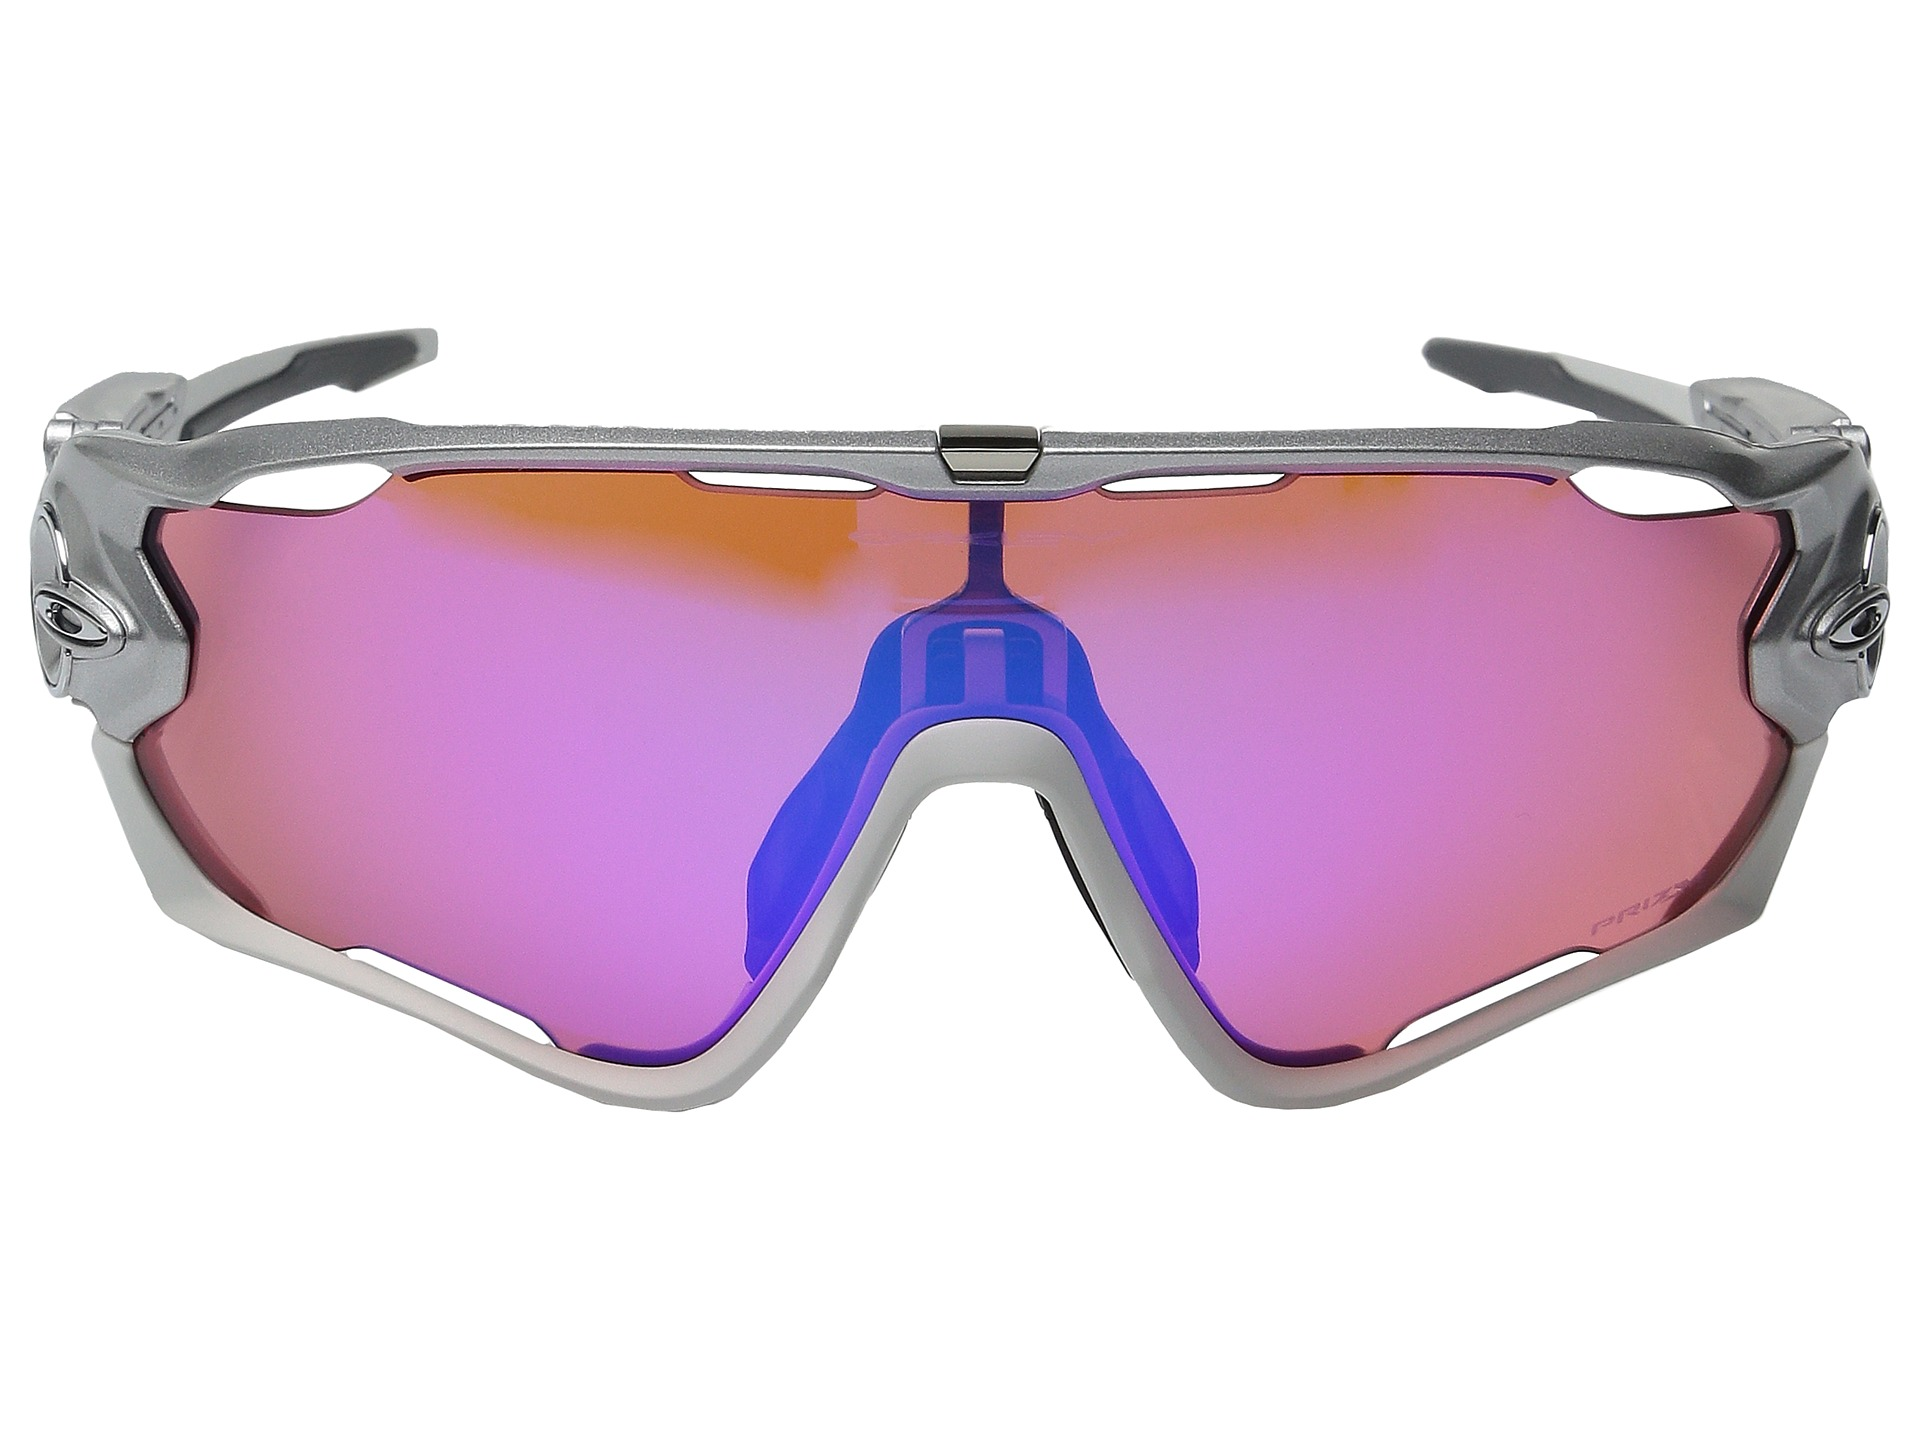 ab51aac85 Oakley Teeth 2 White | United Nations System Chief Executives Board ...